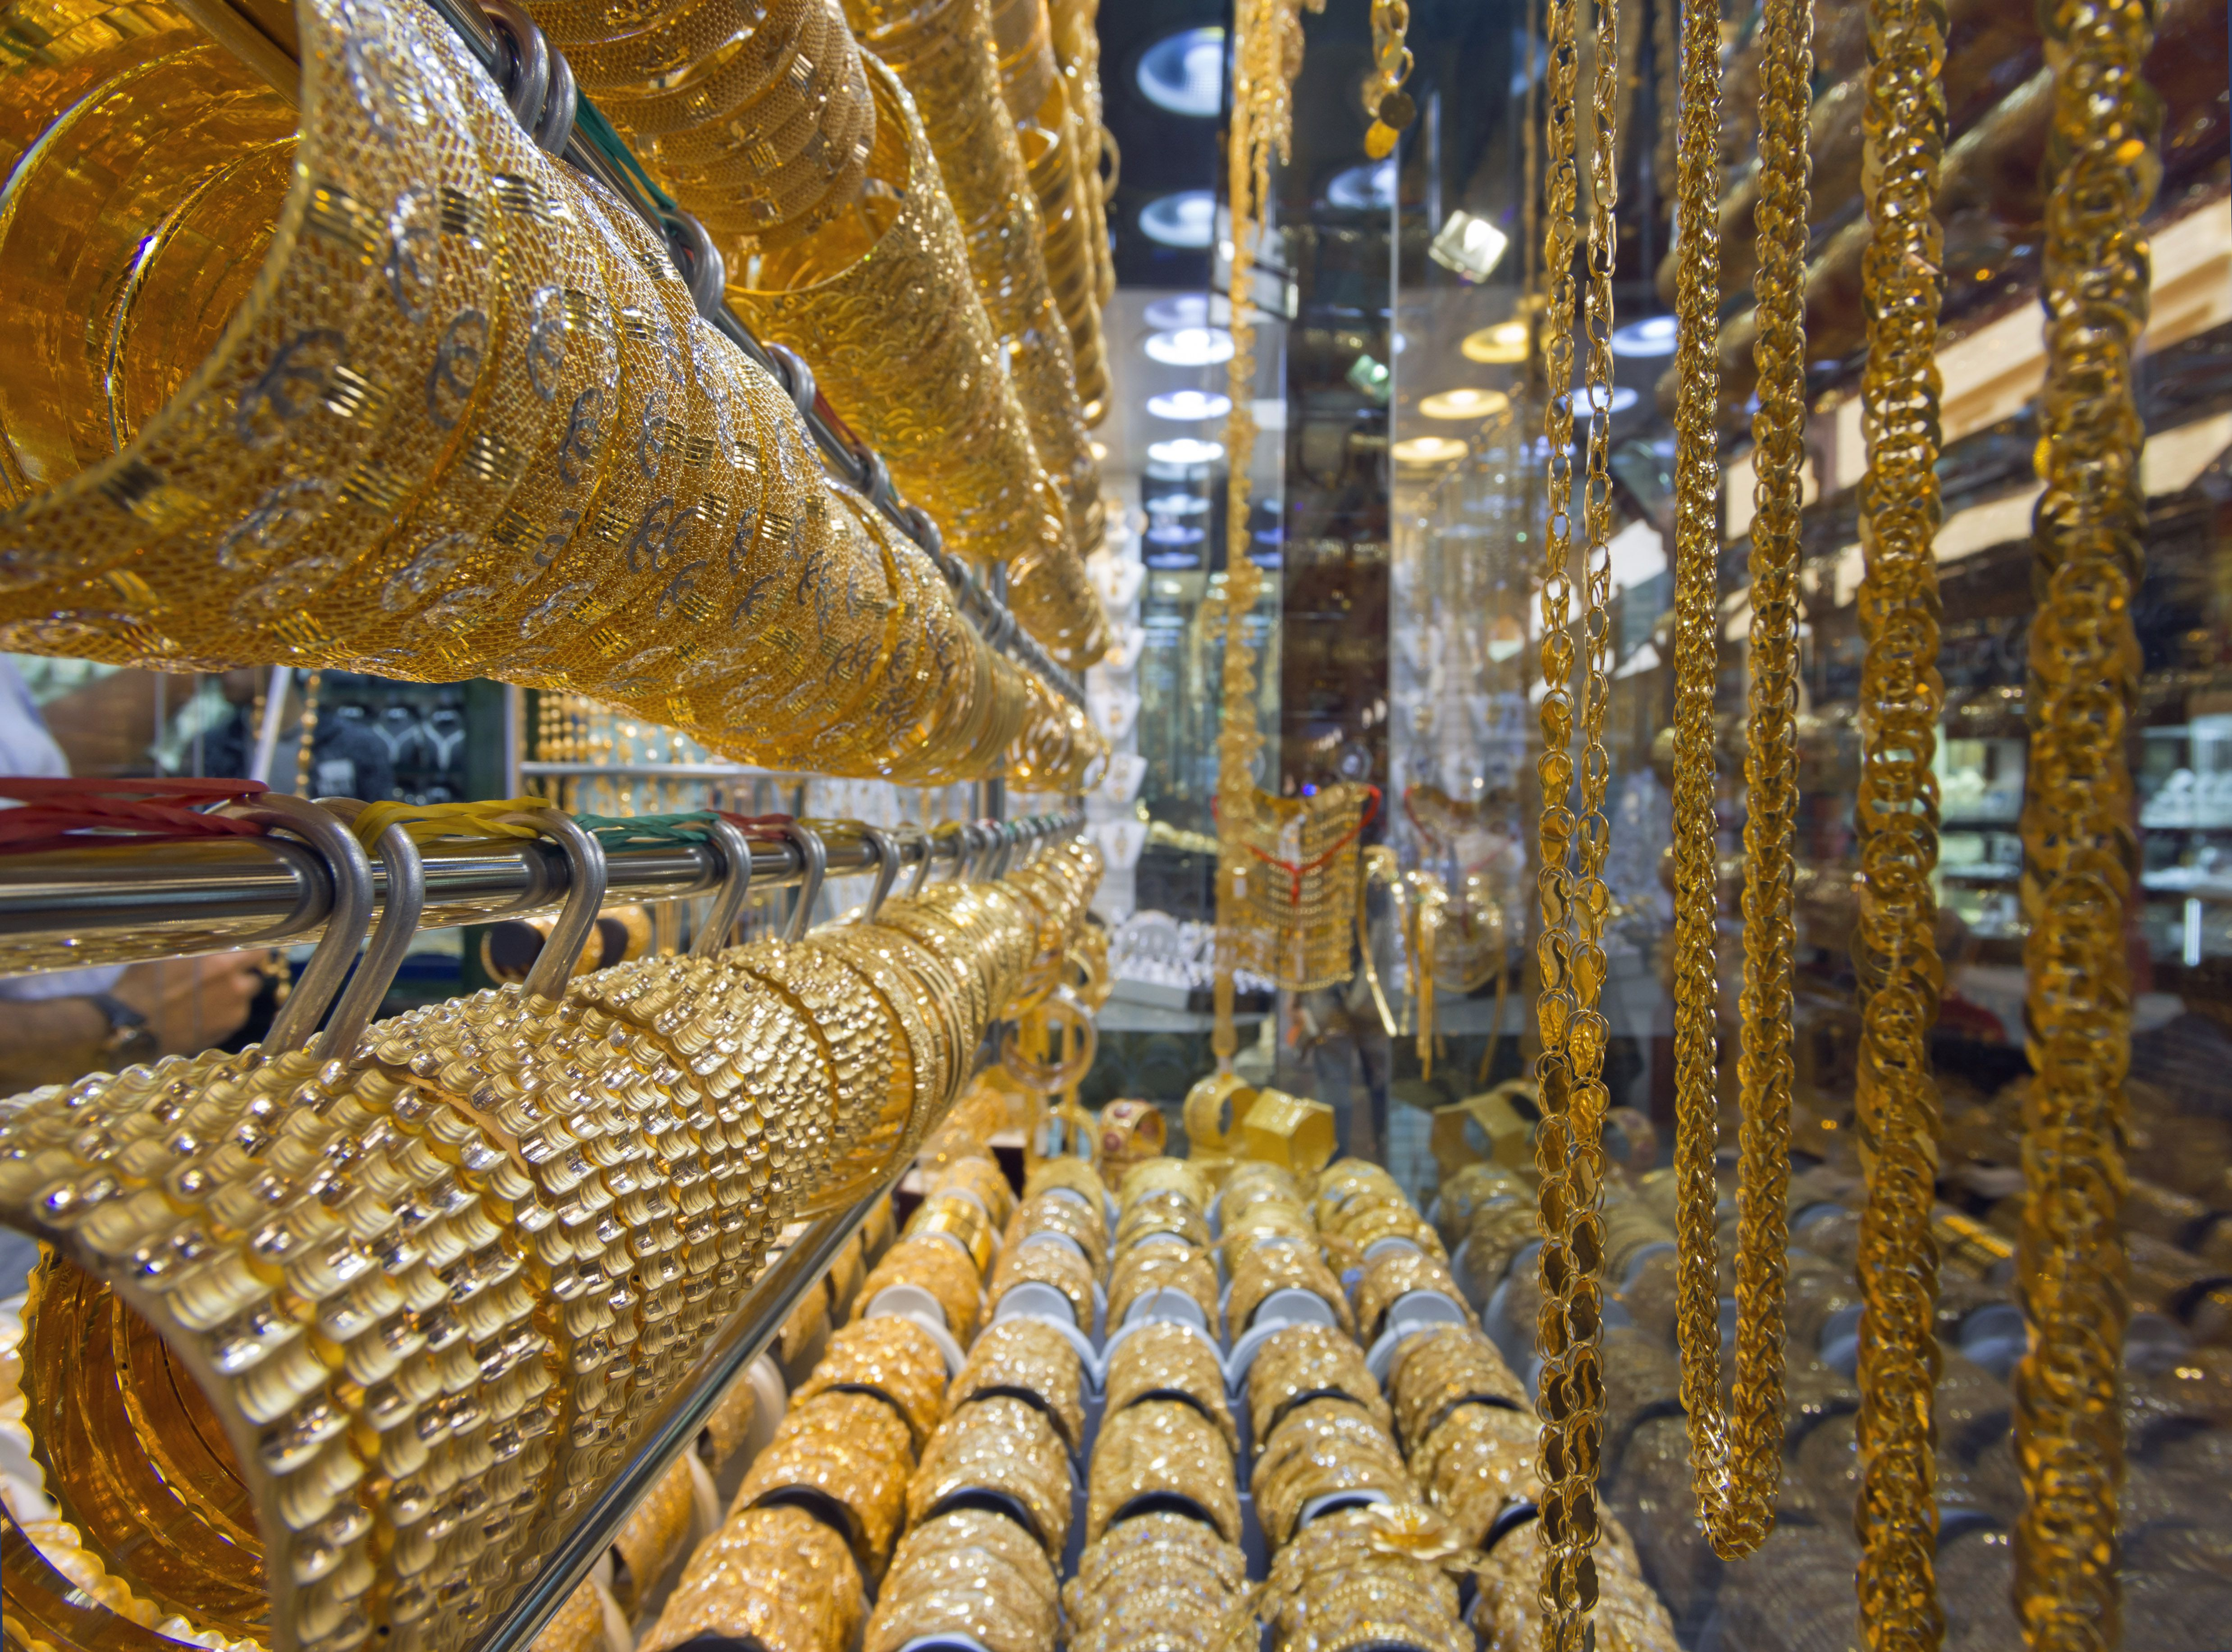 The Gold Souk in Dubai features expensive products.